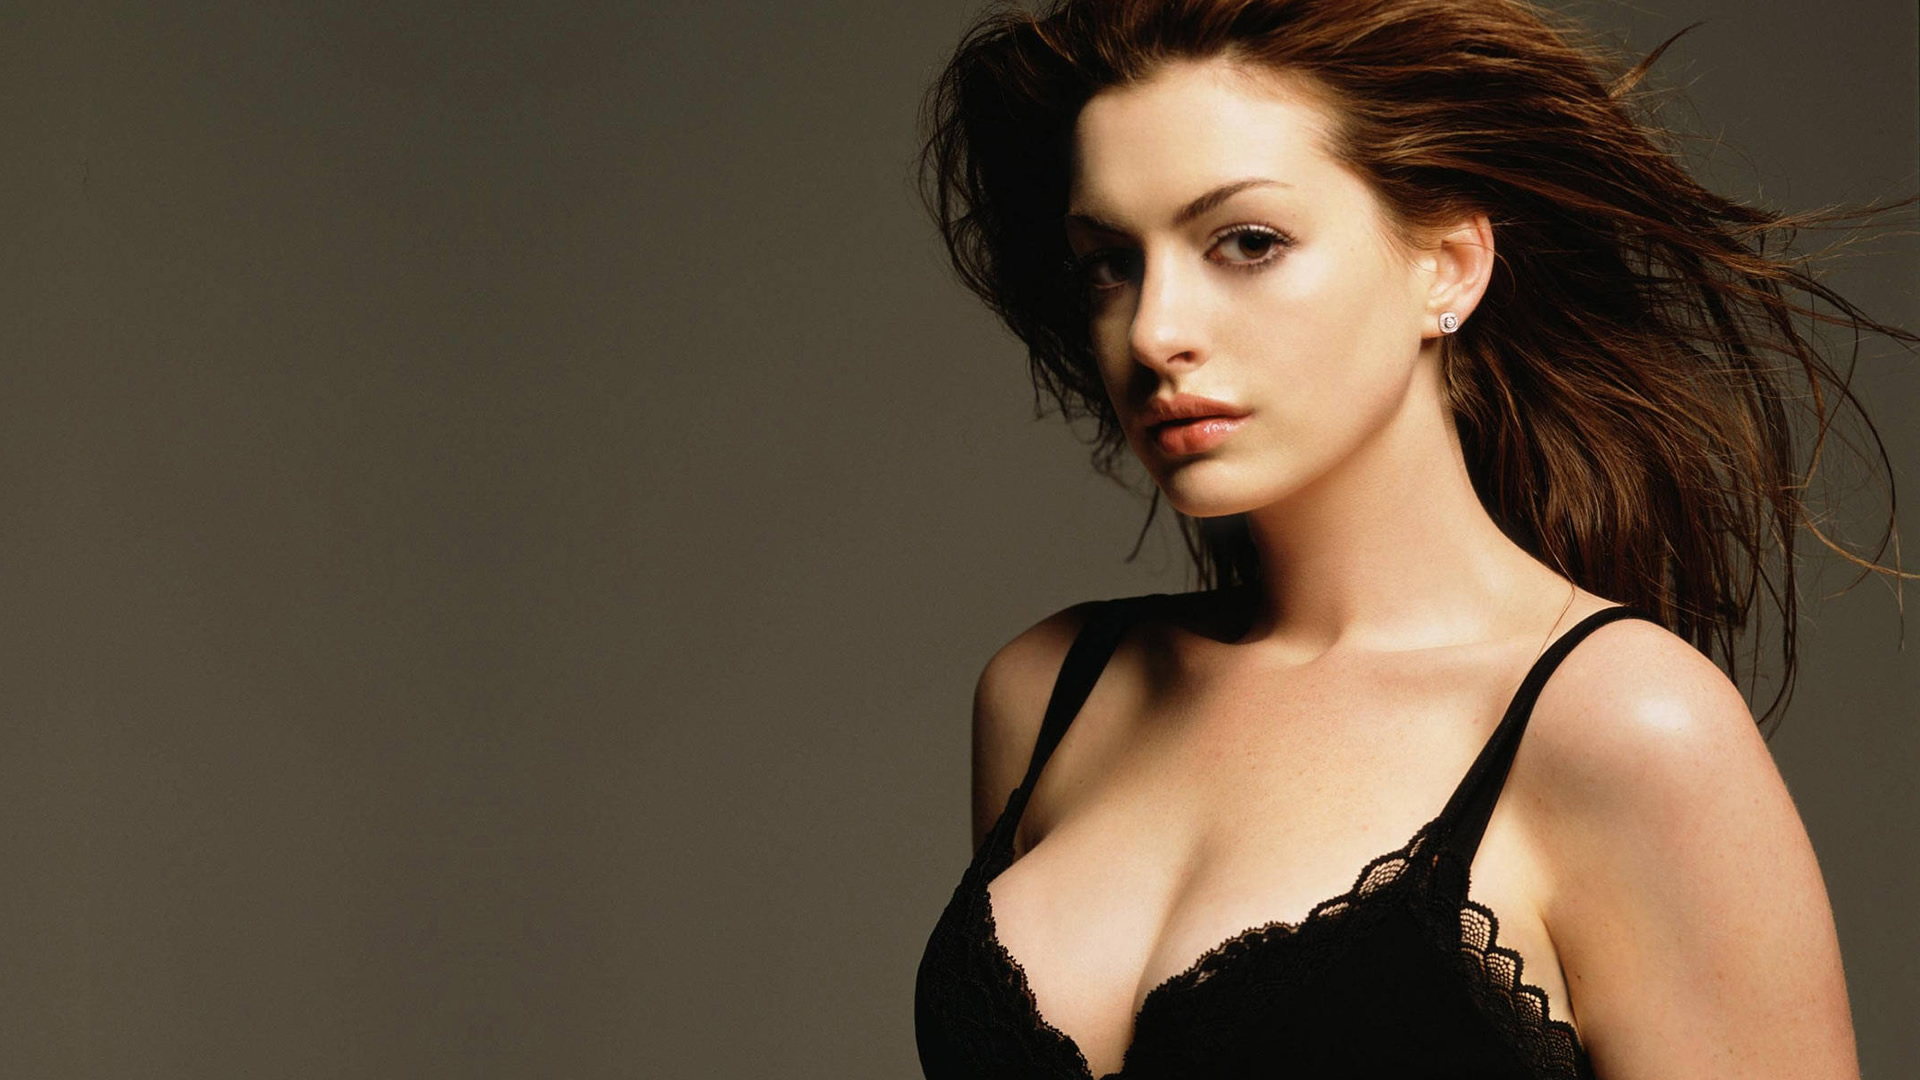 Anne Hathaway Hot & Sexy Bikini Pictures, Images